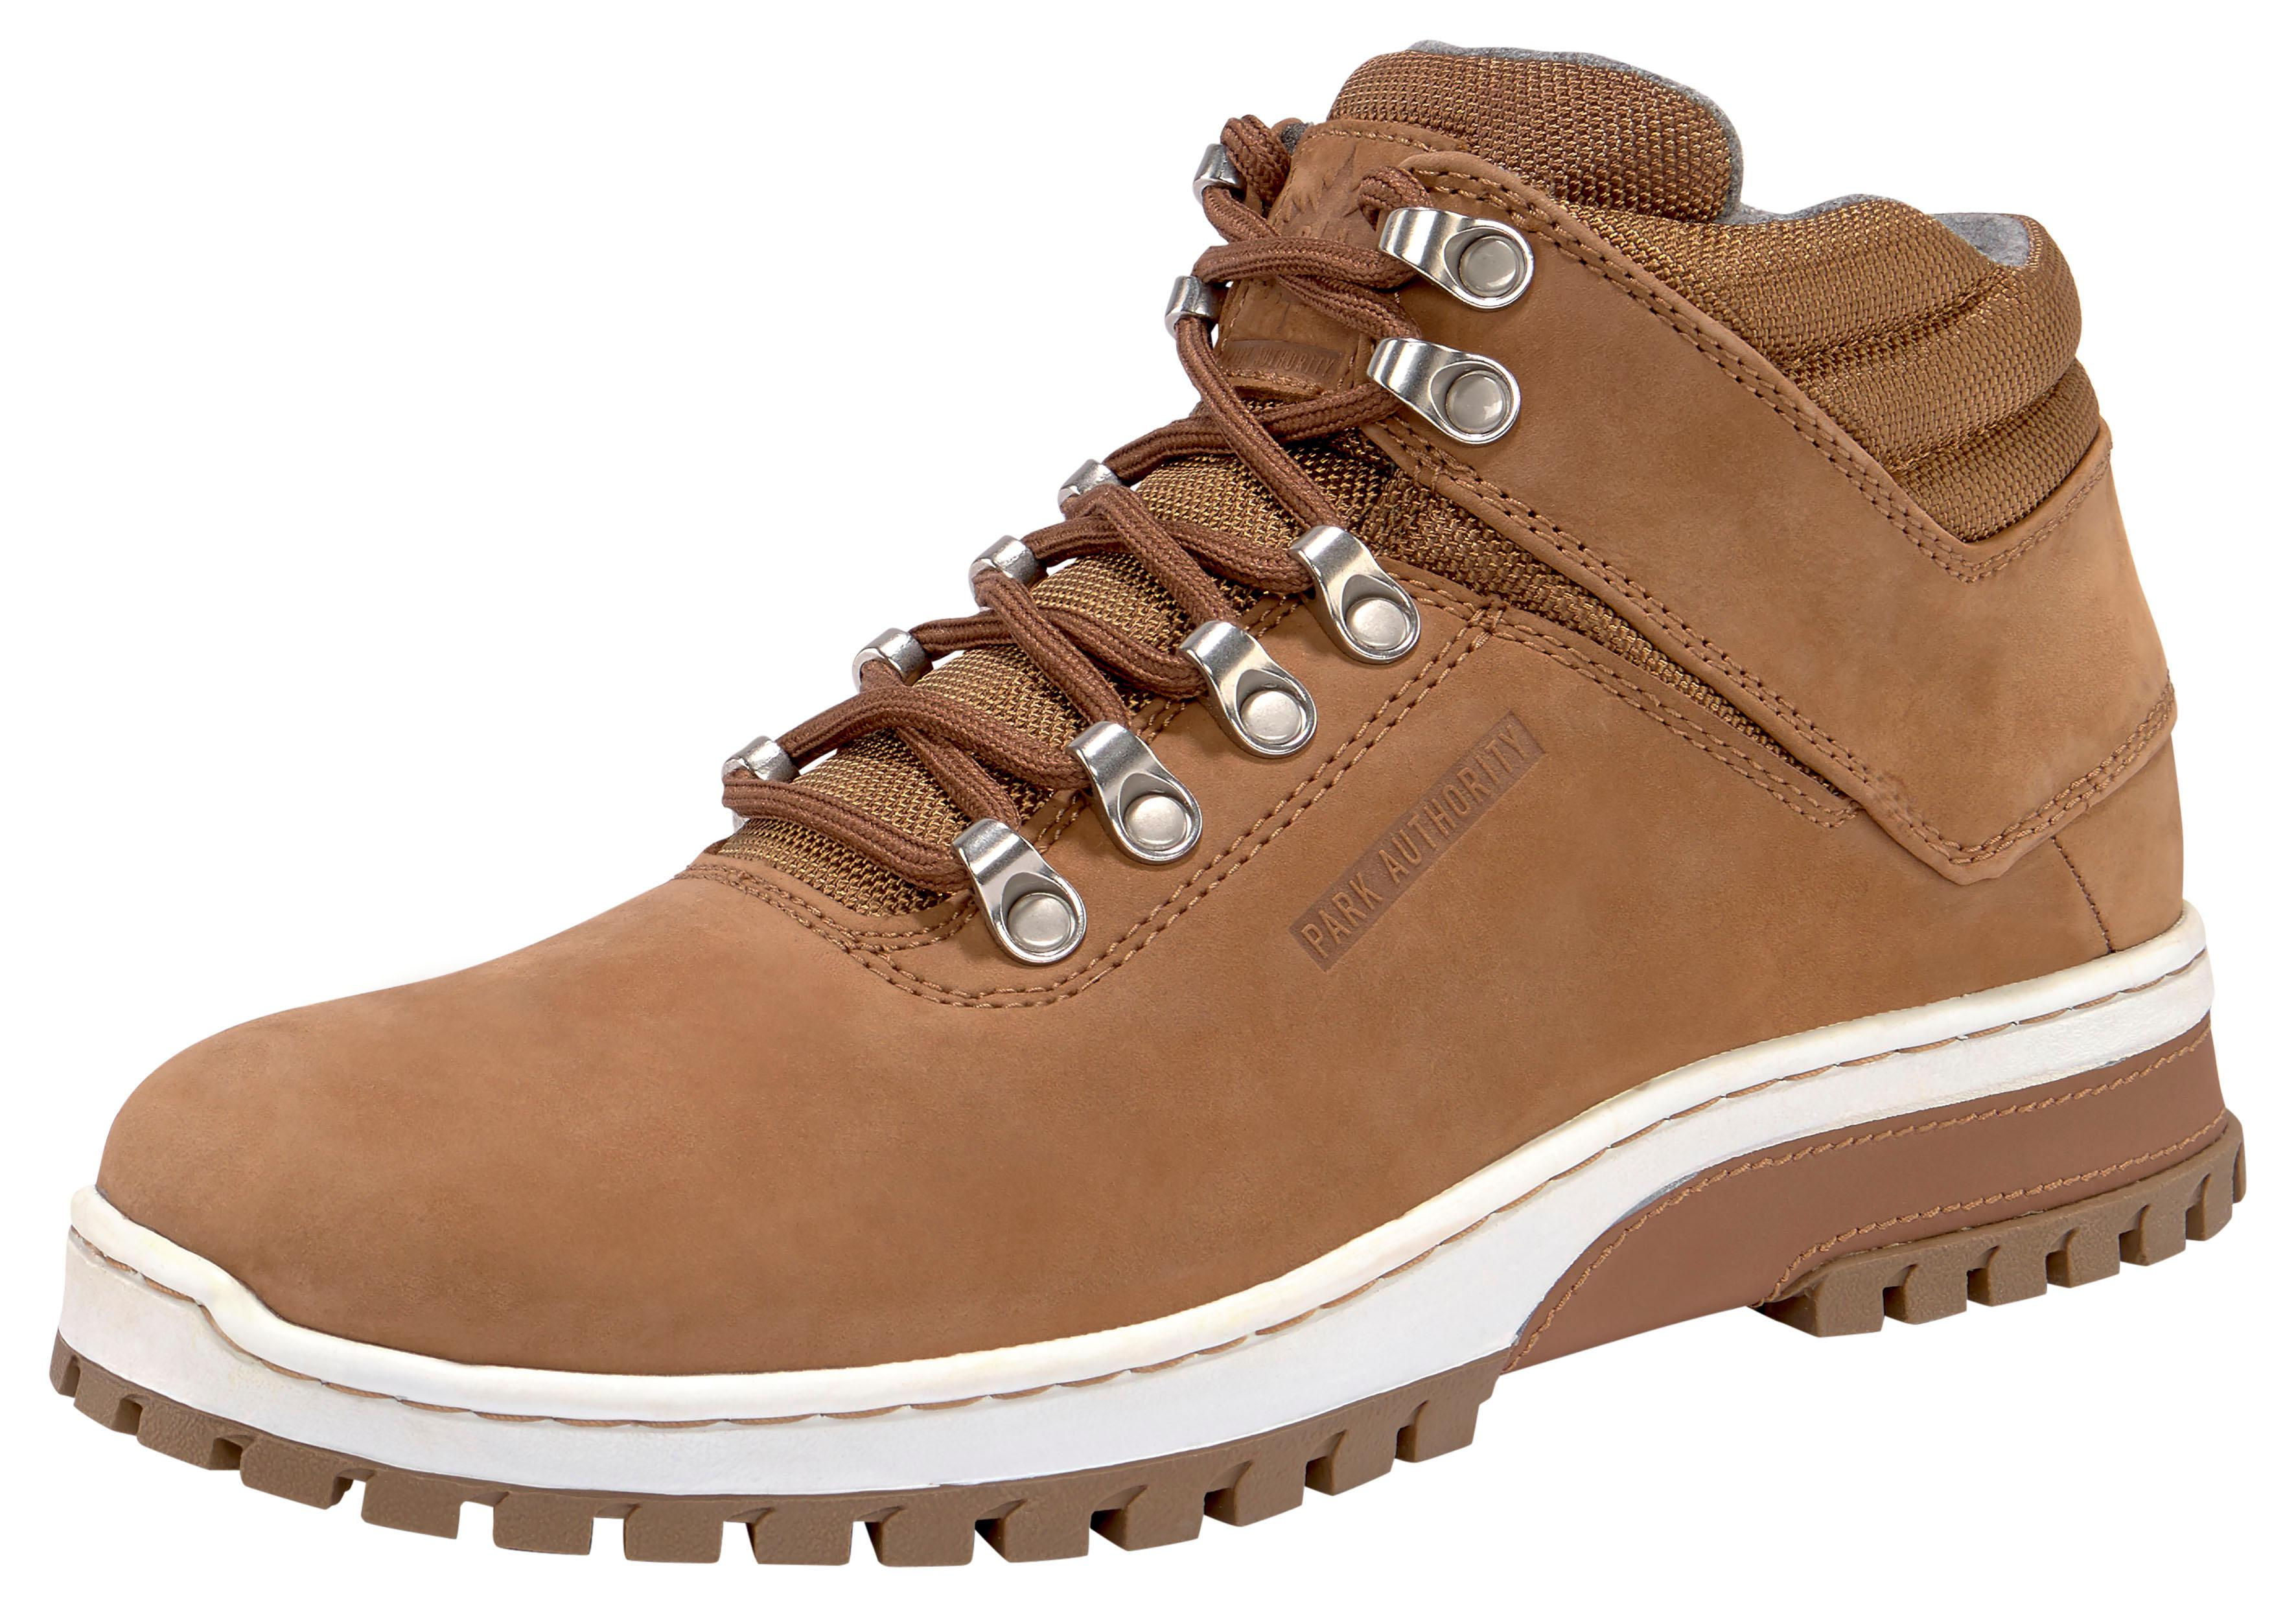 PARK AUTHORITY by K1X Winterboots H1ke Territory Superior | Schuhe > Boots > Boots | Braun | Park Authority By k1x